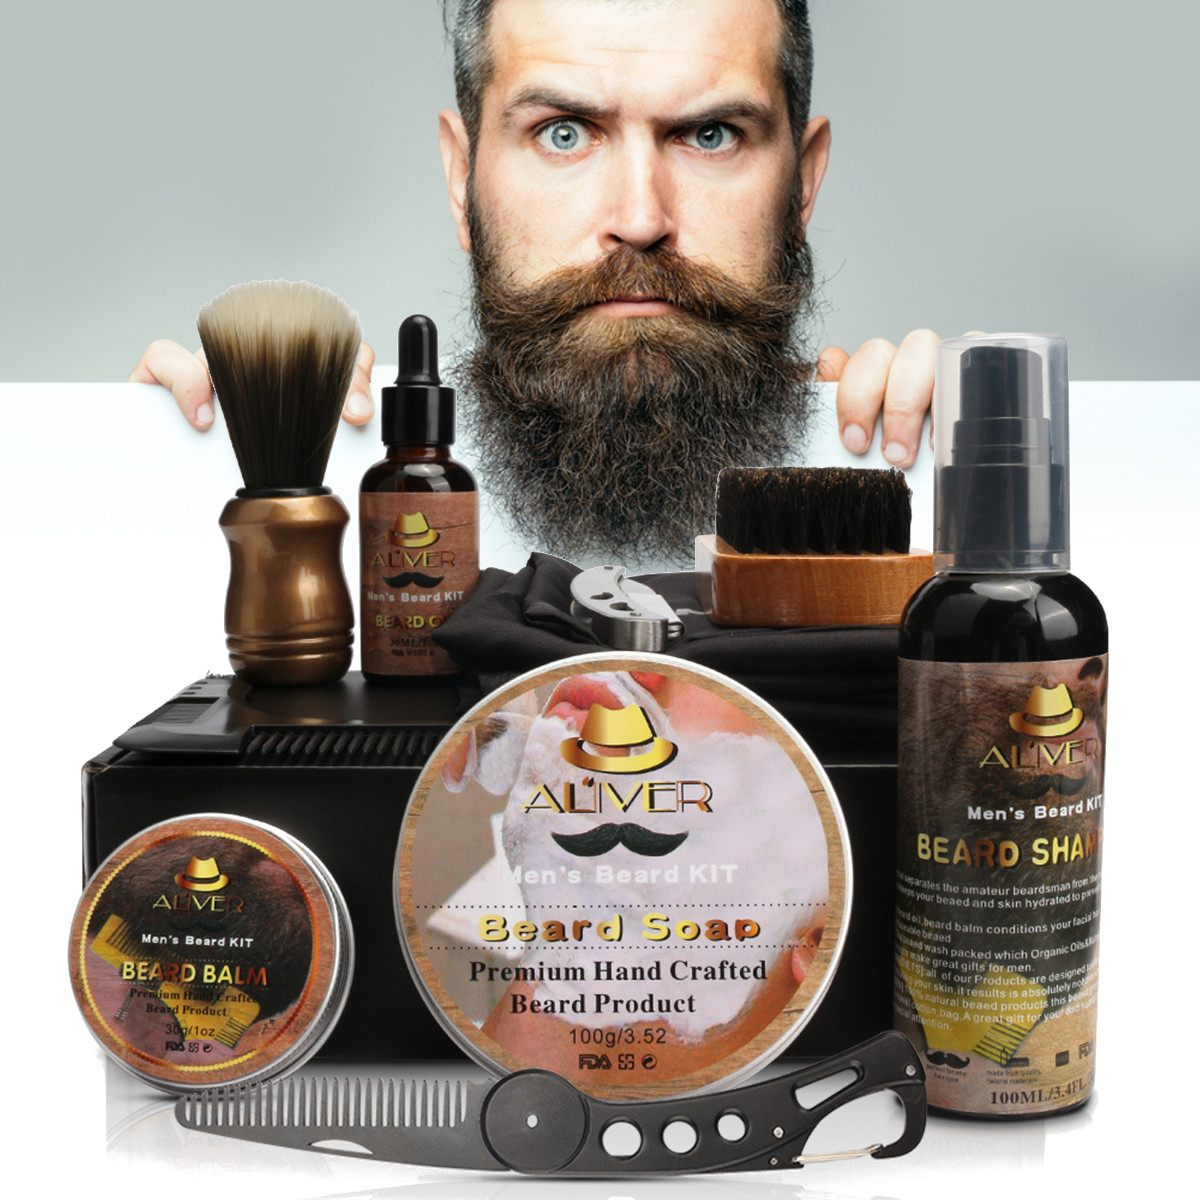 11 Pcs/set Beard Suit Beard Comb Brush Cream Shampoo Beard Styling Care Cleaning Kit Brush Balm Razor Care For Men Grooming Gift